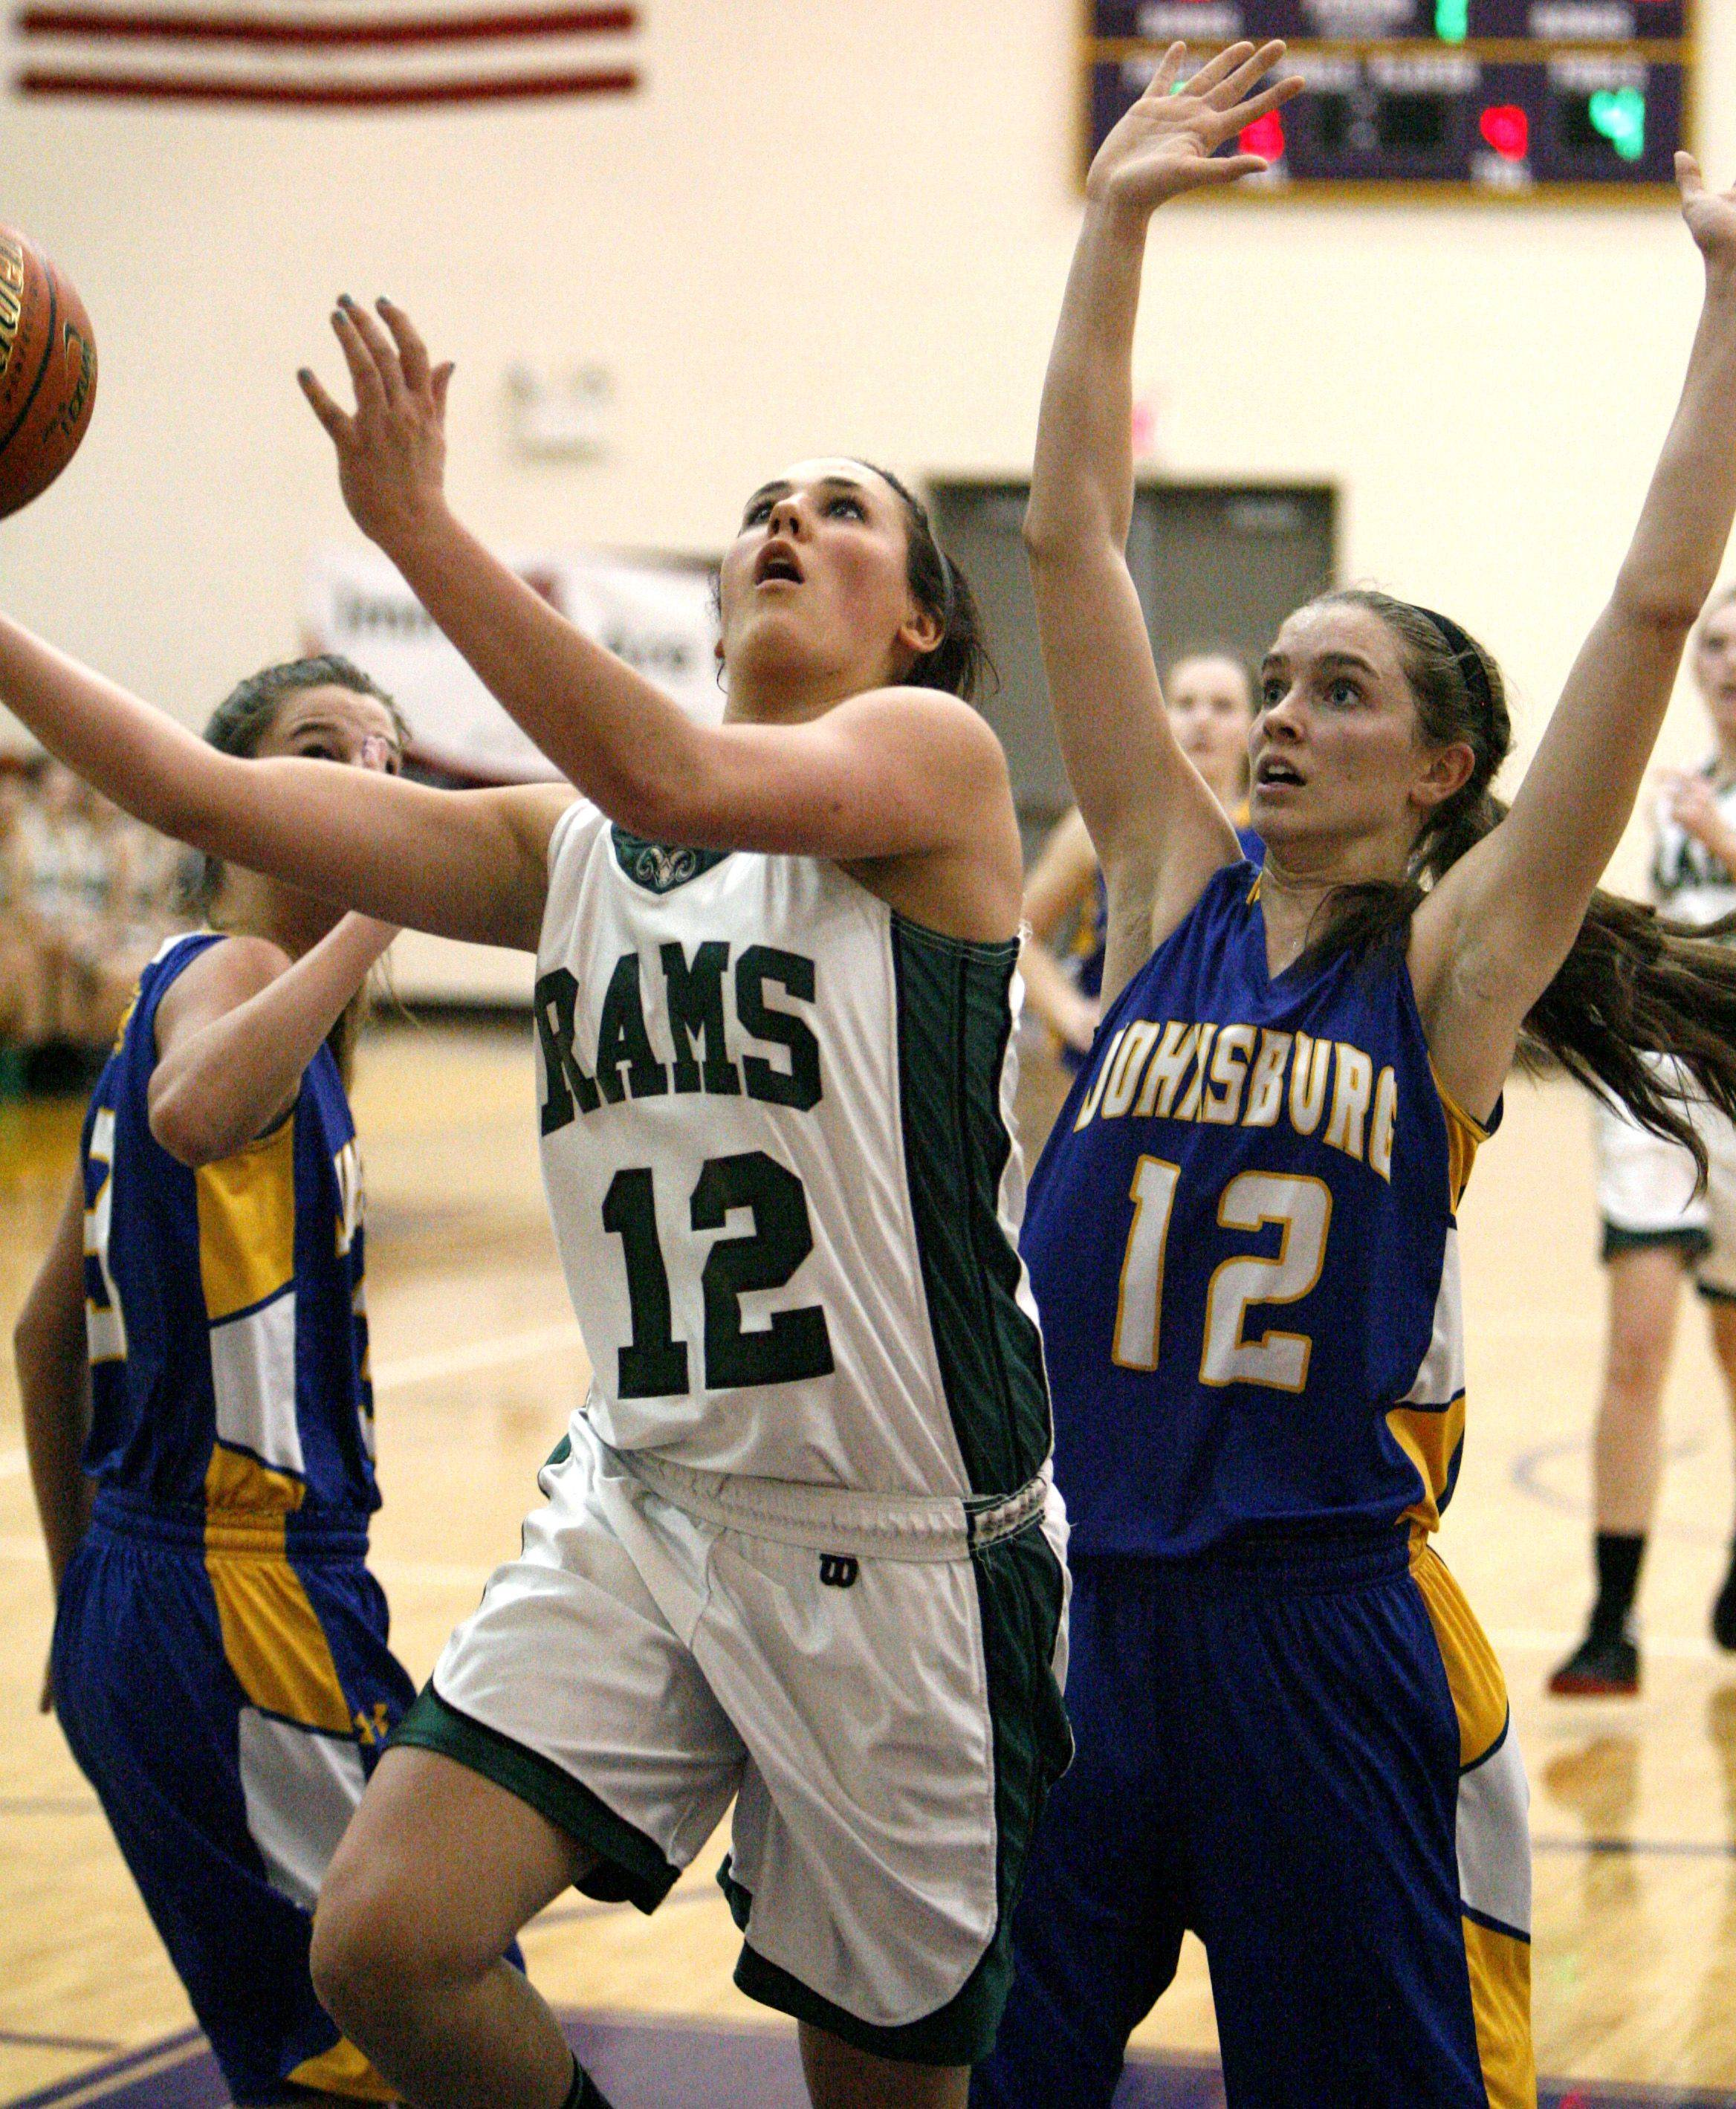 Grayslake Central's Claire Brennan drives the lane past Johnsburg defender Stephanie Cherwin for a layup in Class 3A regional final play Friday.